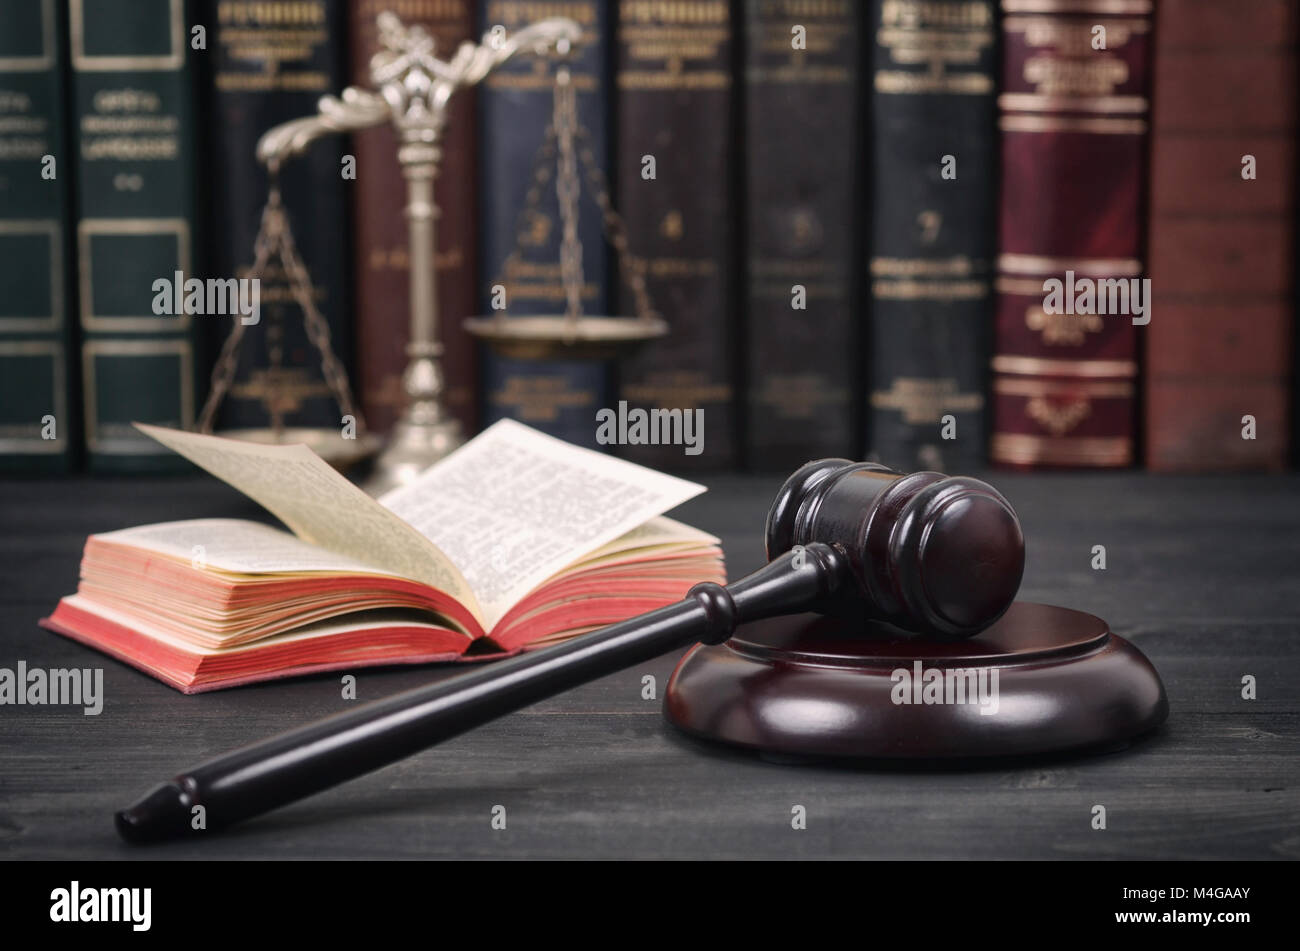 Law and Justice, Legality concept, Scales of Justice and Judge Gavel on a black wooden background. - Stock Image